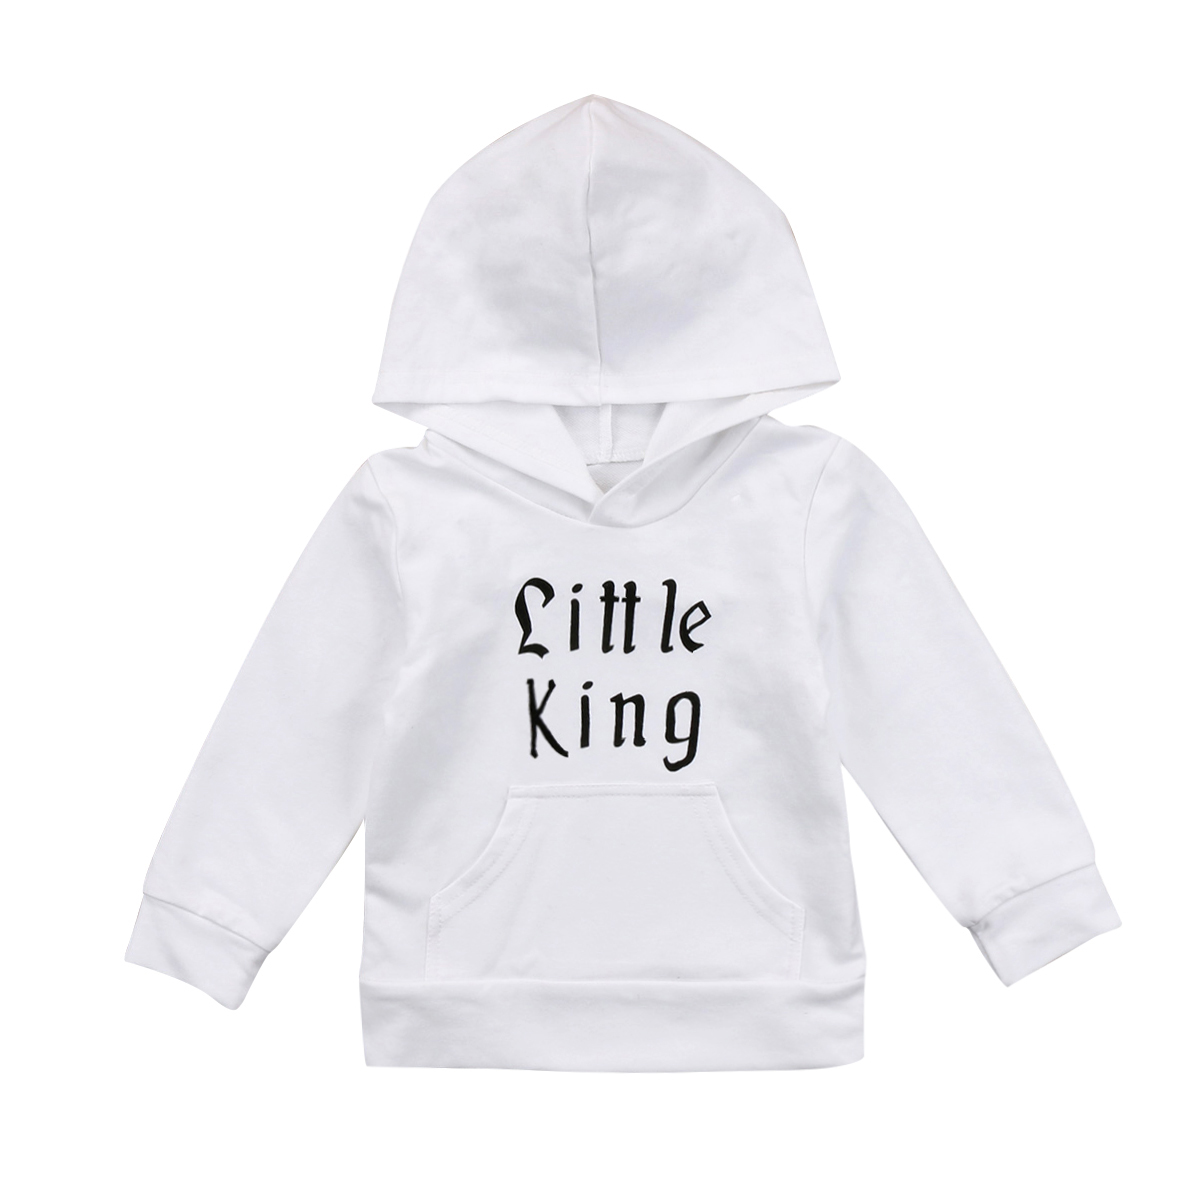 Babies Little Boys Letter Hooded Pocket T-shirt Casual Toddler Newborn Baby Boy Girl Hoodie Tops Hooded Outdoor 0-5Y Clothing одежда на маленьких мальчиков